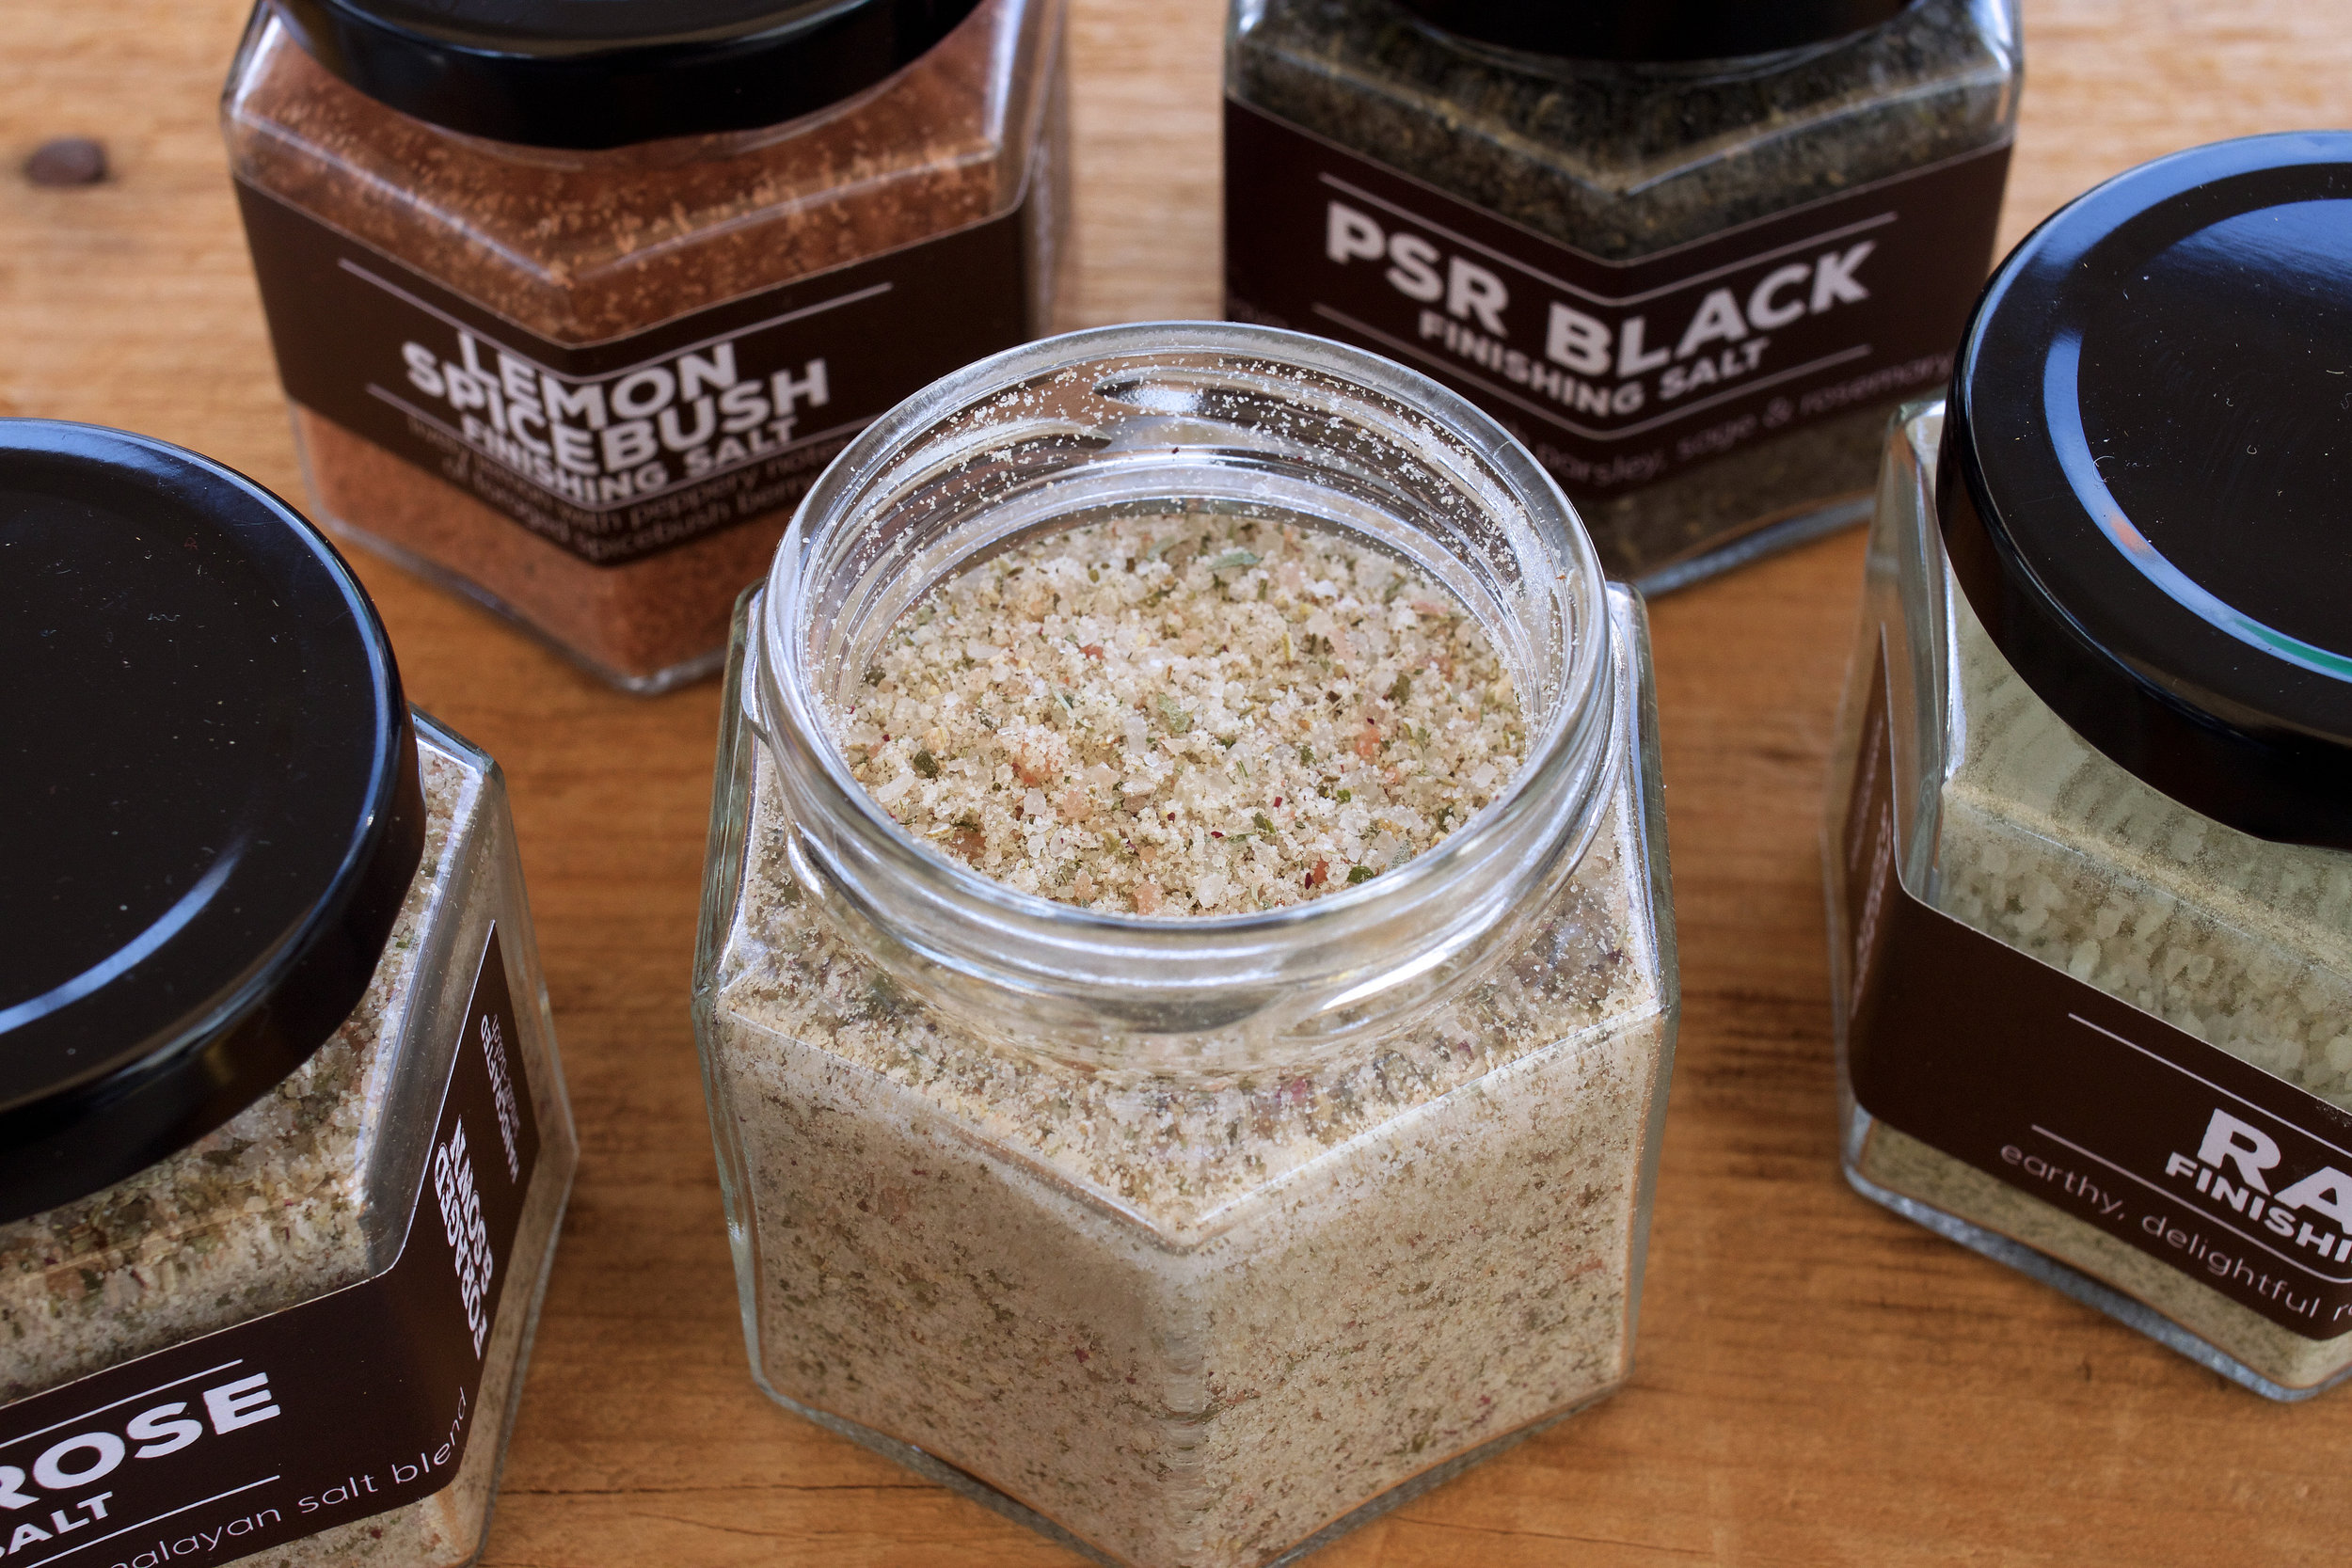 We blend farm-grown and foraged savory herbs into finishing salts in a variety of flavors: Lemon-Spicebush, Ramp, PSR Black, and garlicky Soil, Sun & Sea